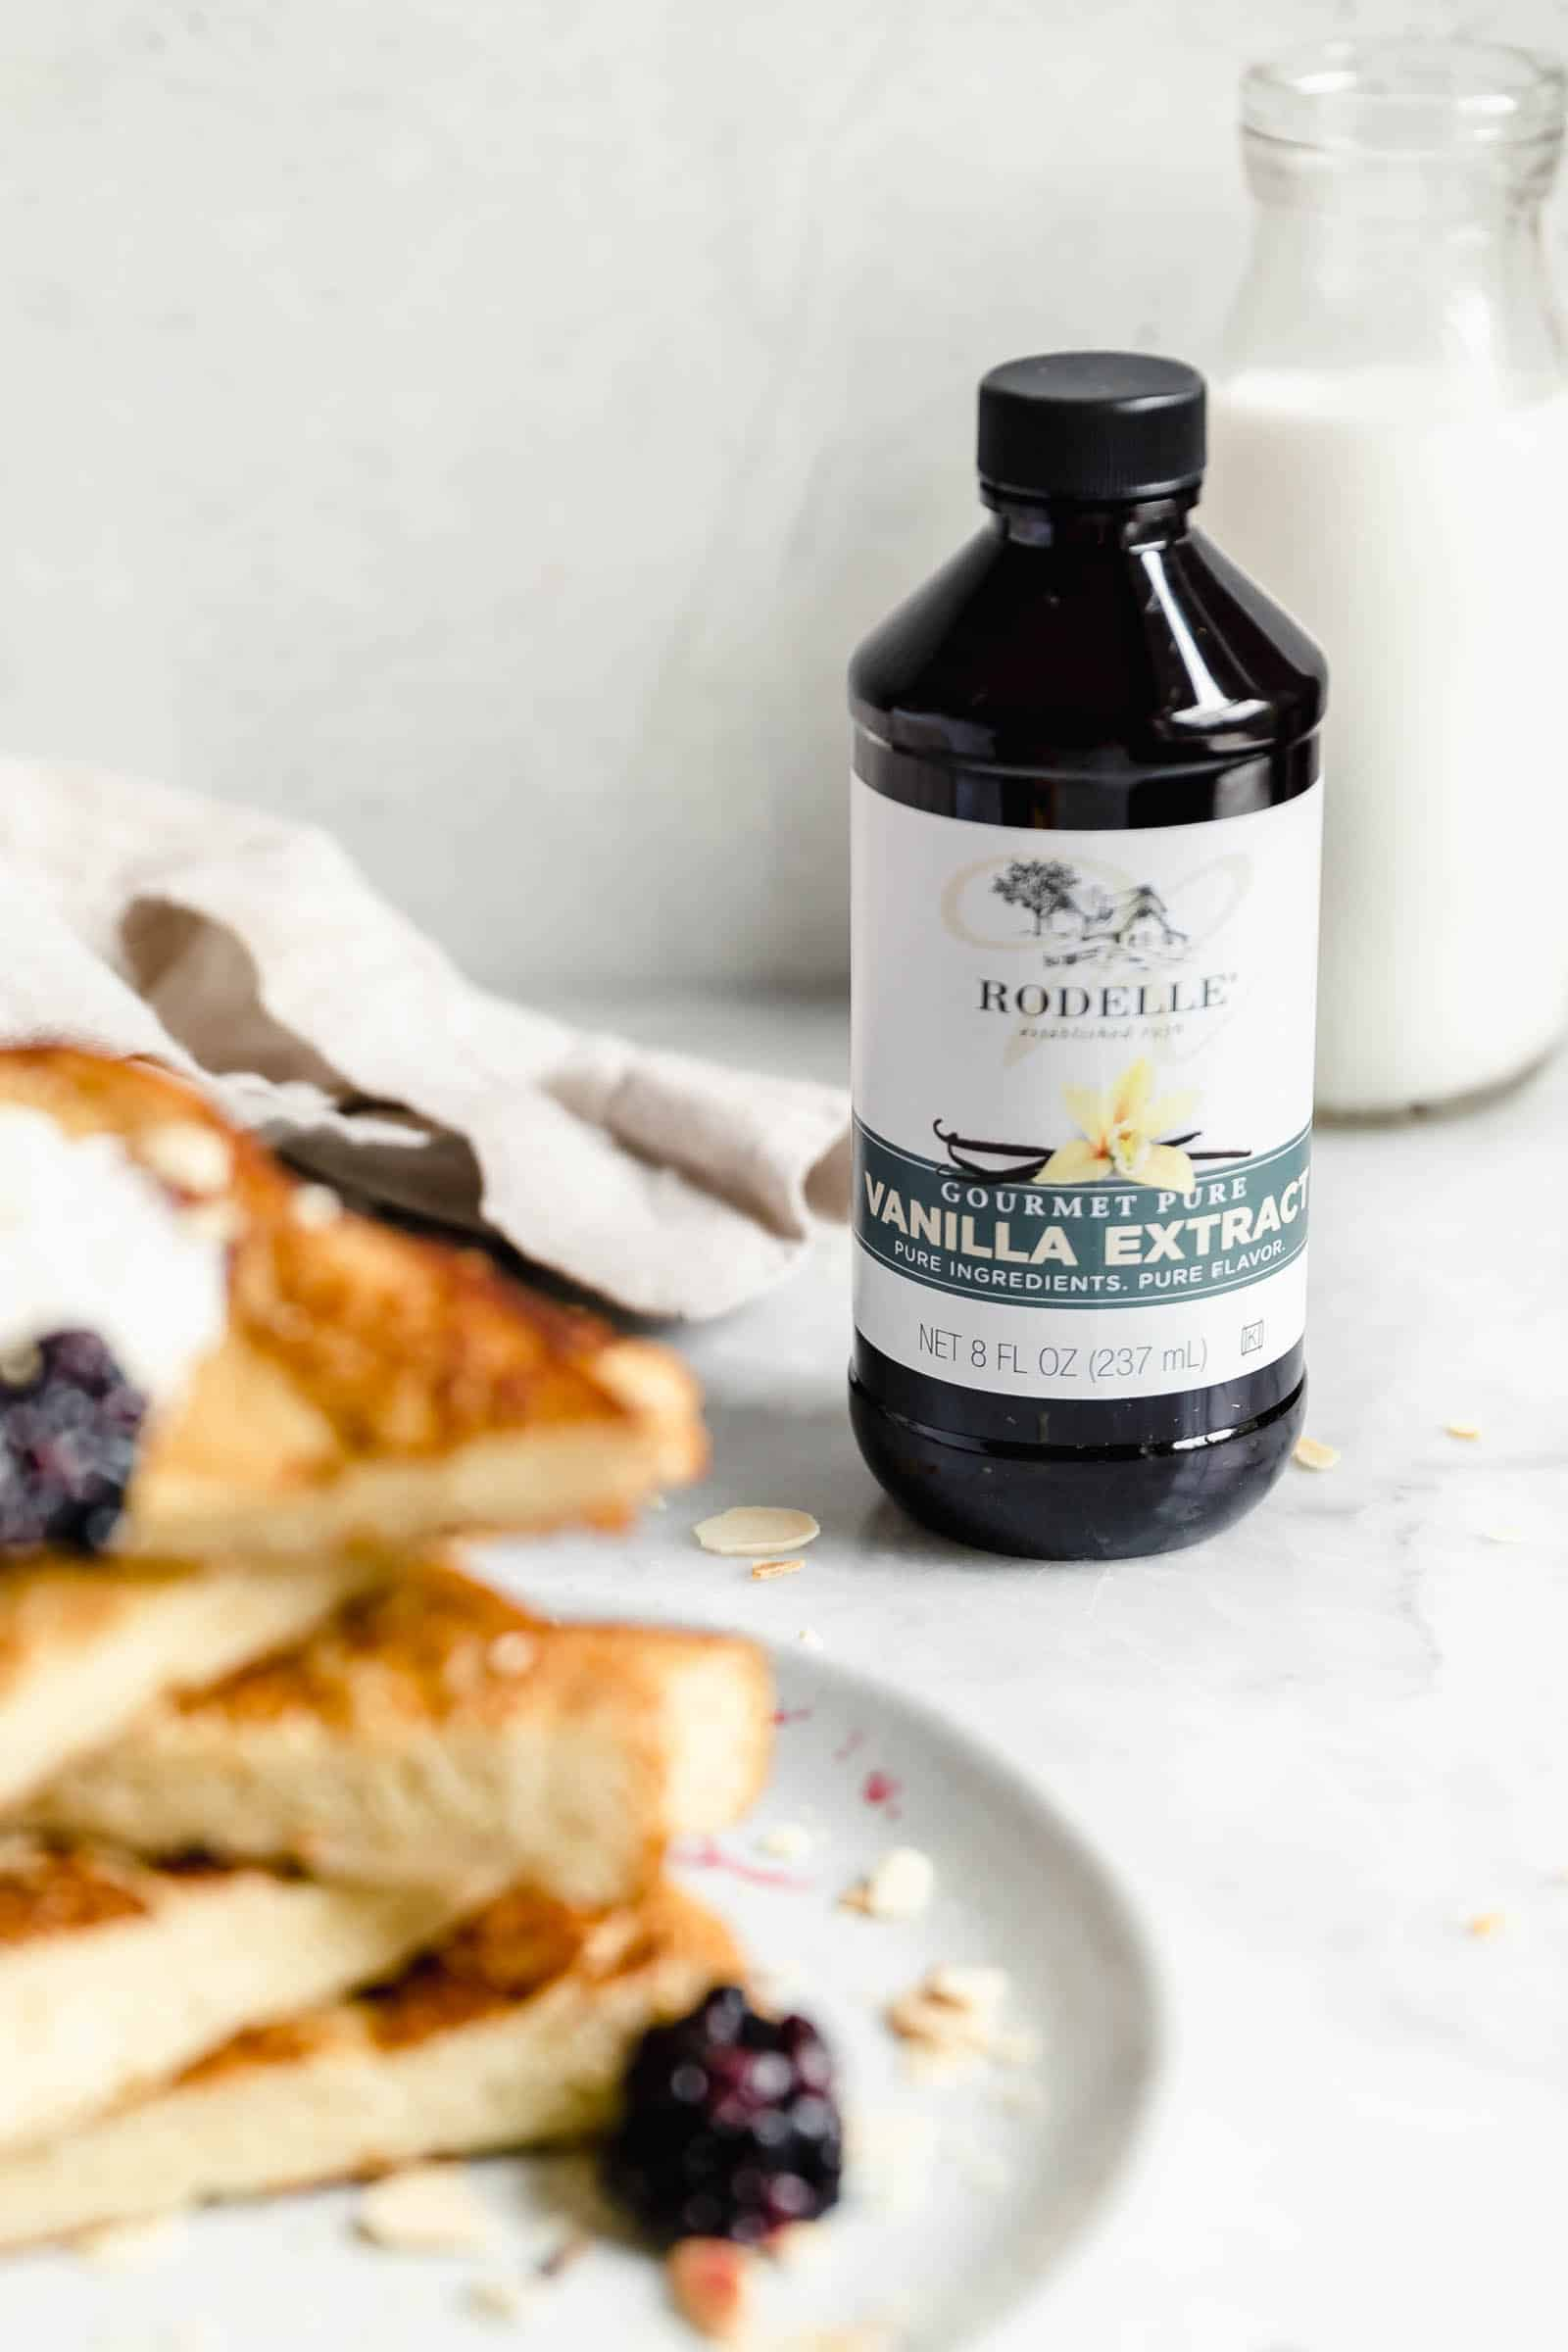 rodelle vanilla extract with vanilla french toast